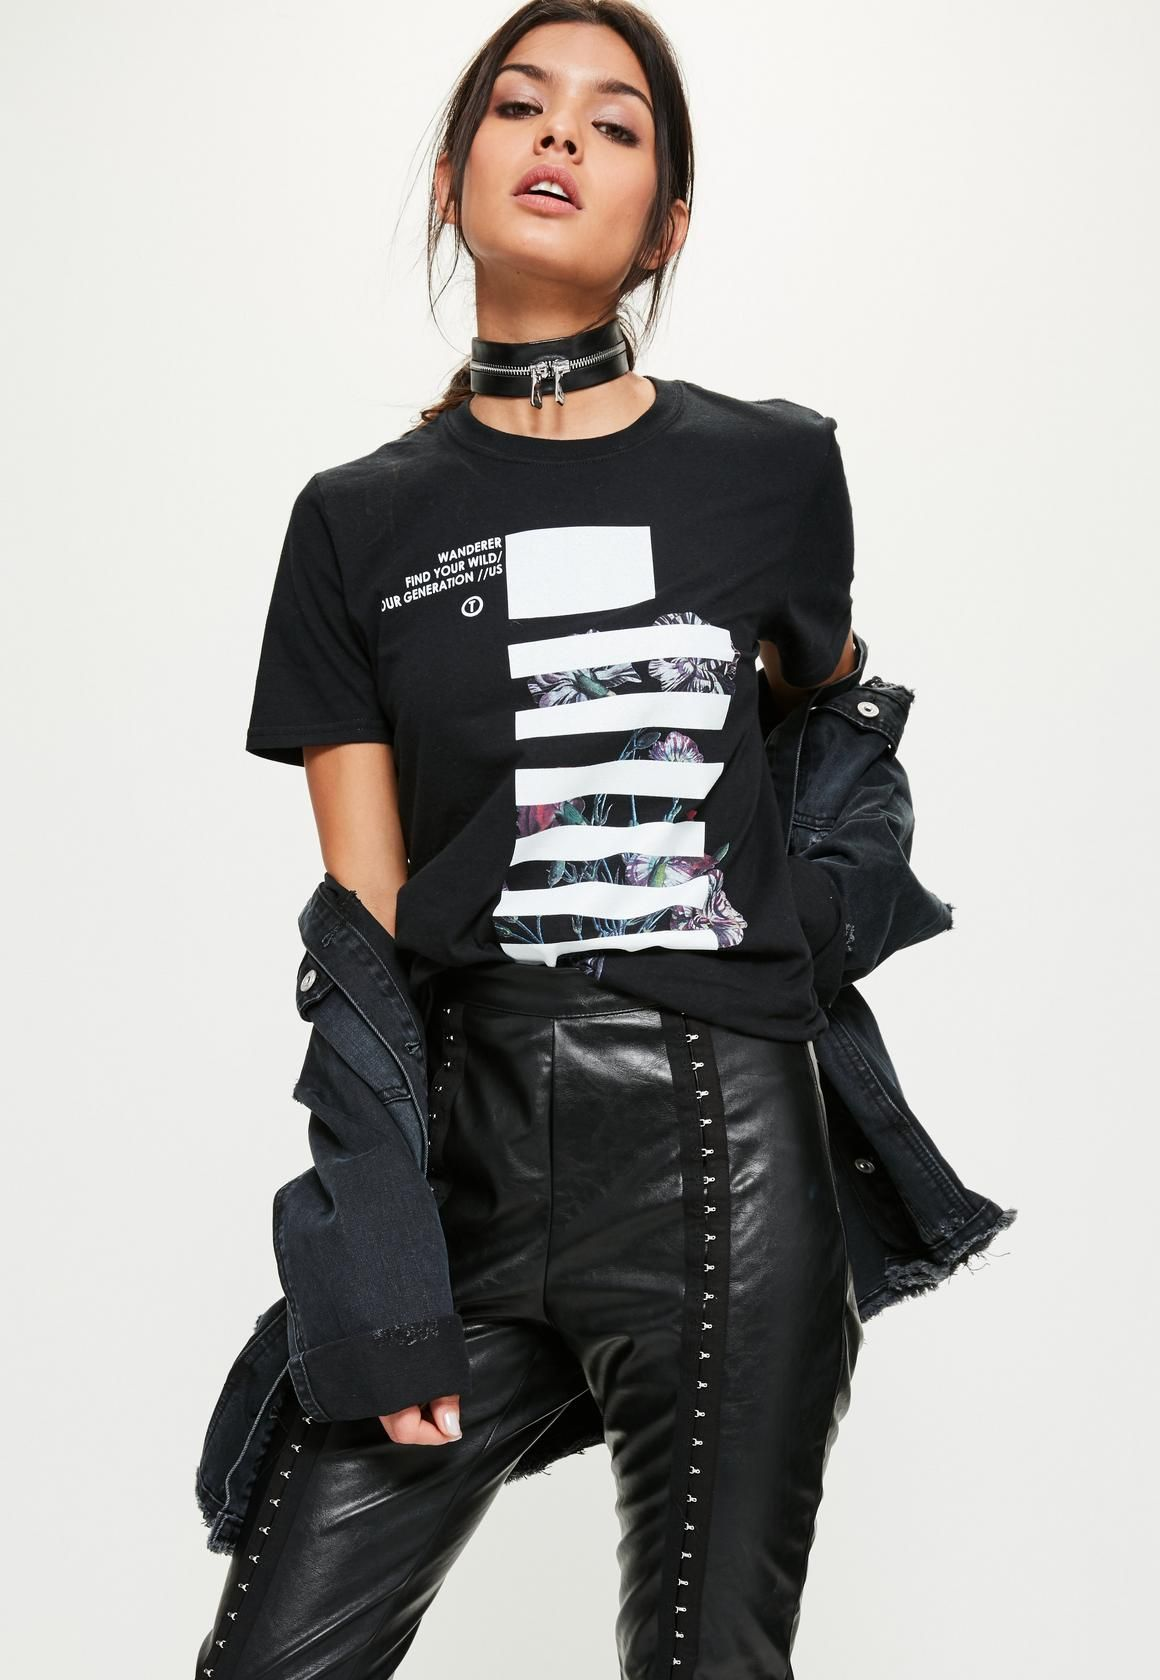 54afaf440 Missguided - Black Mono Graphic Oversized T-Shirt | clothes and ...